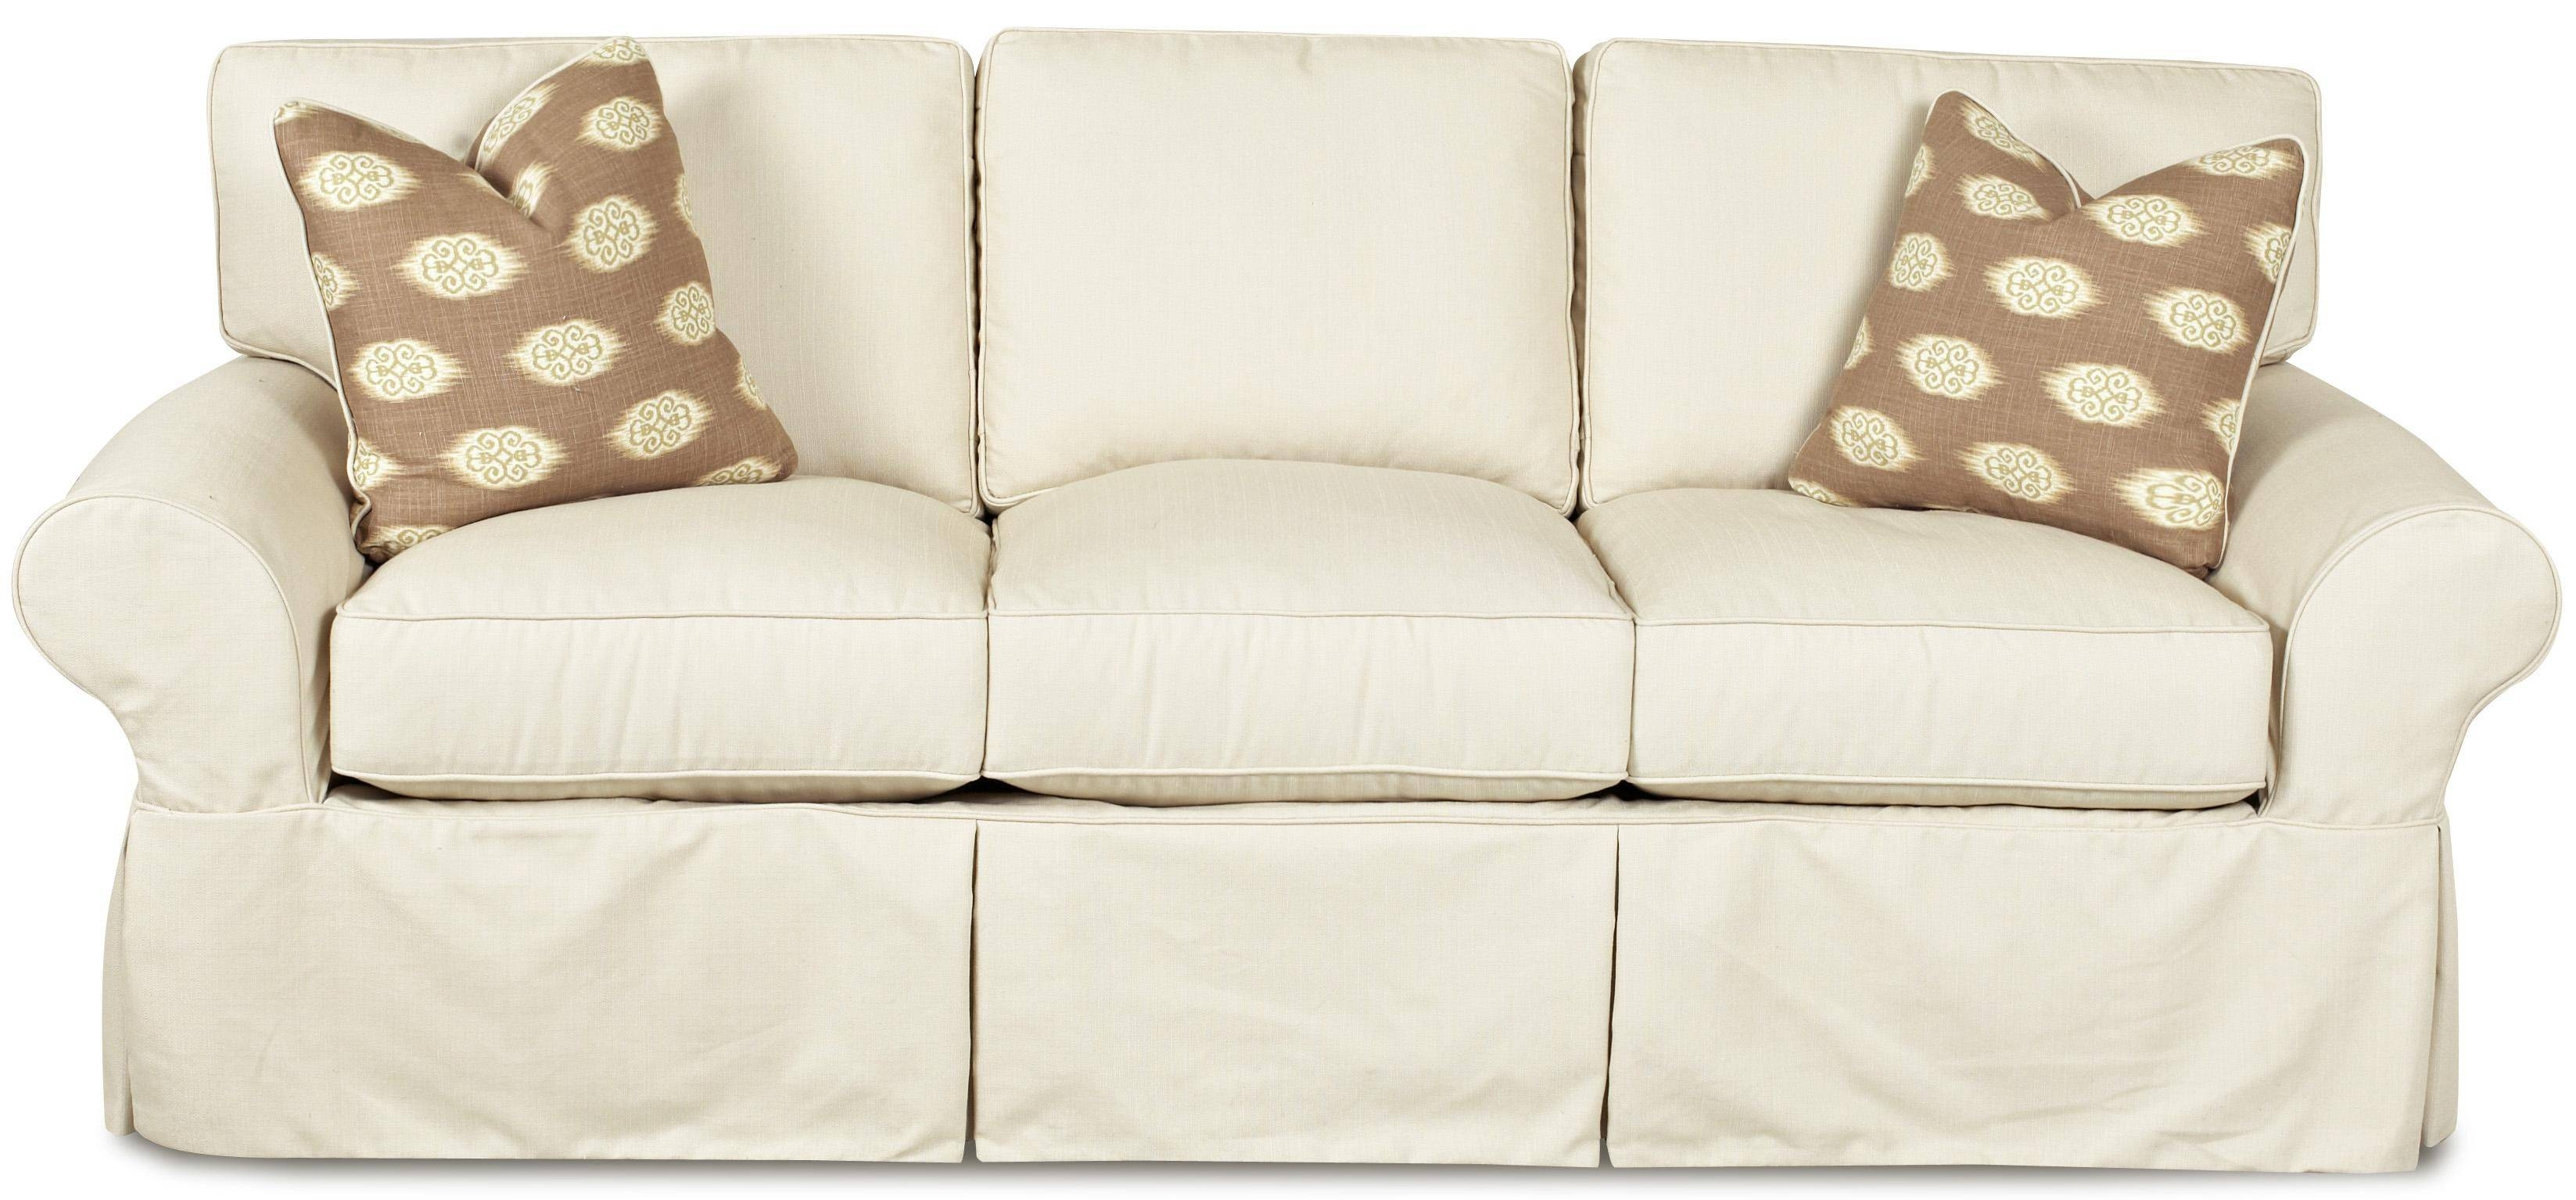 Furniture: 3 Seat Couch Slipcovers Walmart In Grey For Home With Slipcovers For 3 Cushion Sofas (Photo 12 of 15)